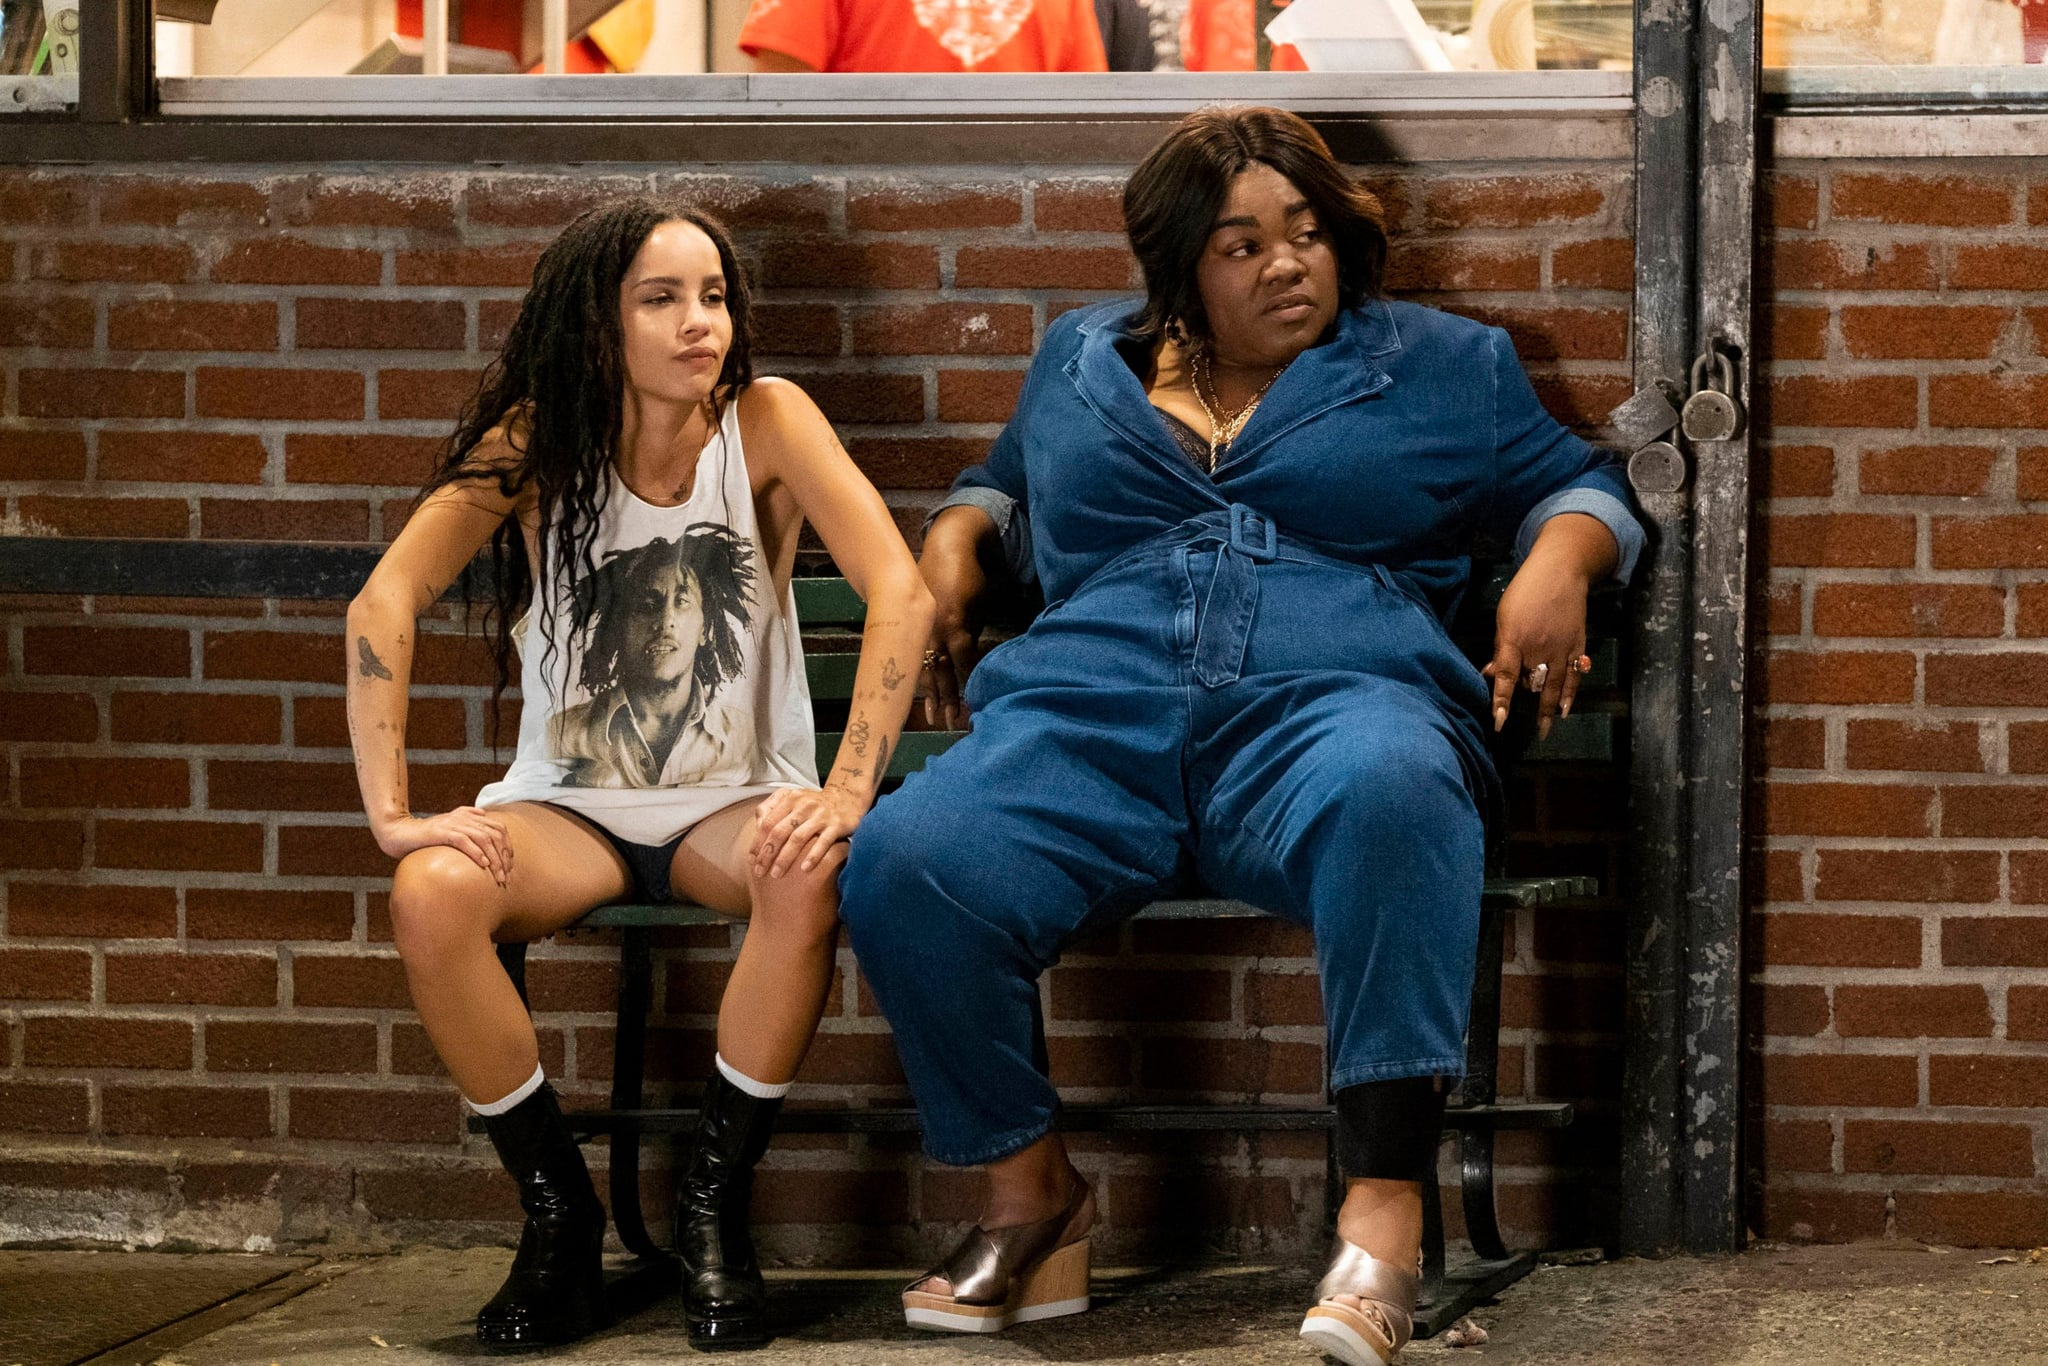 HIGH FIDELITY, from left: Zoe Kravitz, Da & # 39; Vine Joy Randolph, & # 39; Weird ... But Warm, (Season 1, Episode 106, broadcast on February 14, 2020). Photo: Phillip Caruso / Hulu / Courtesy of the Everett Collection